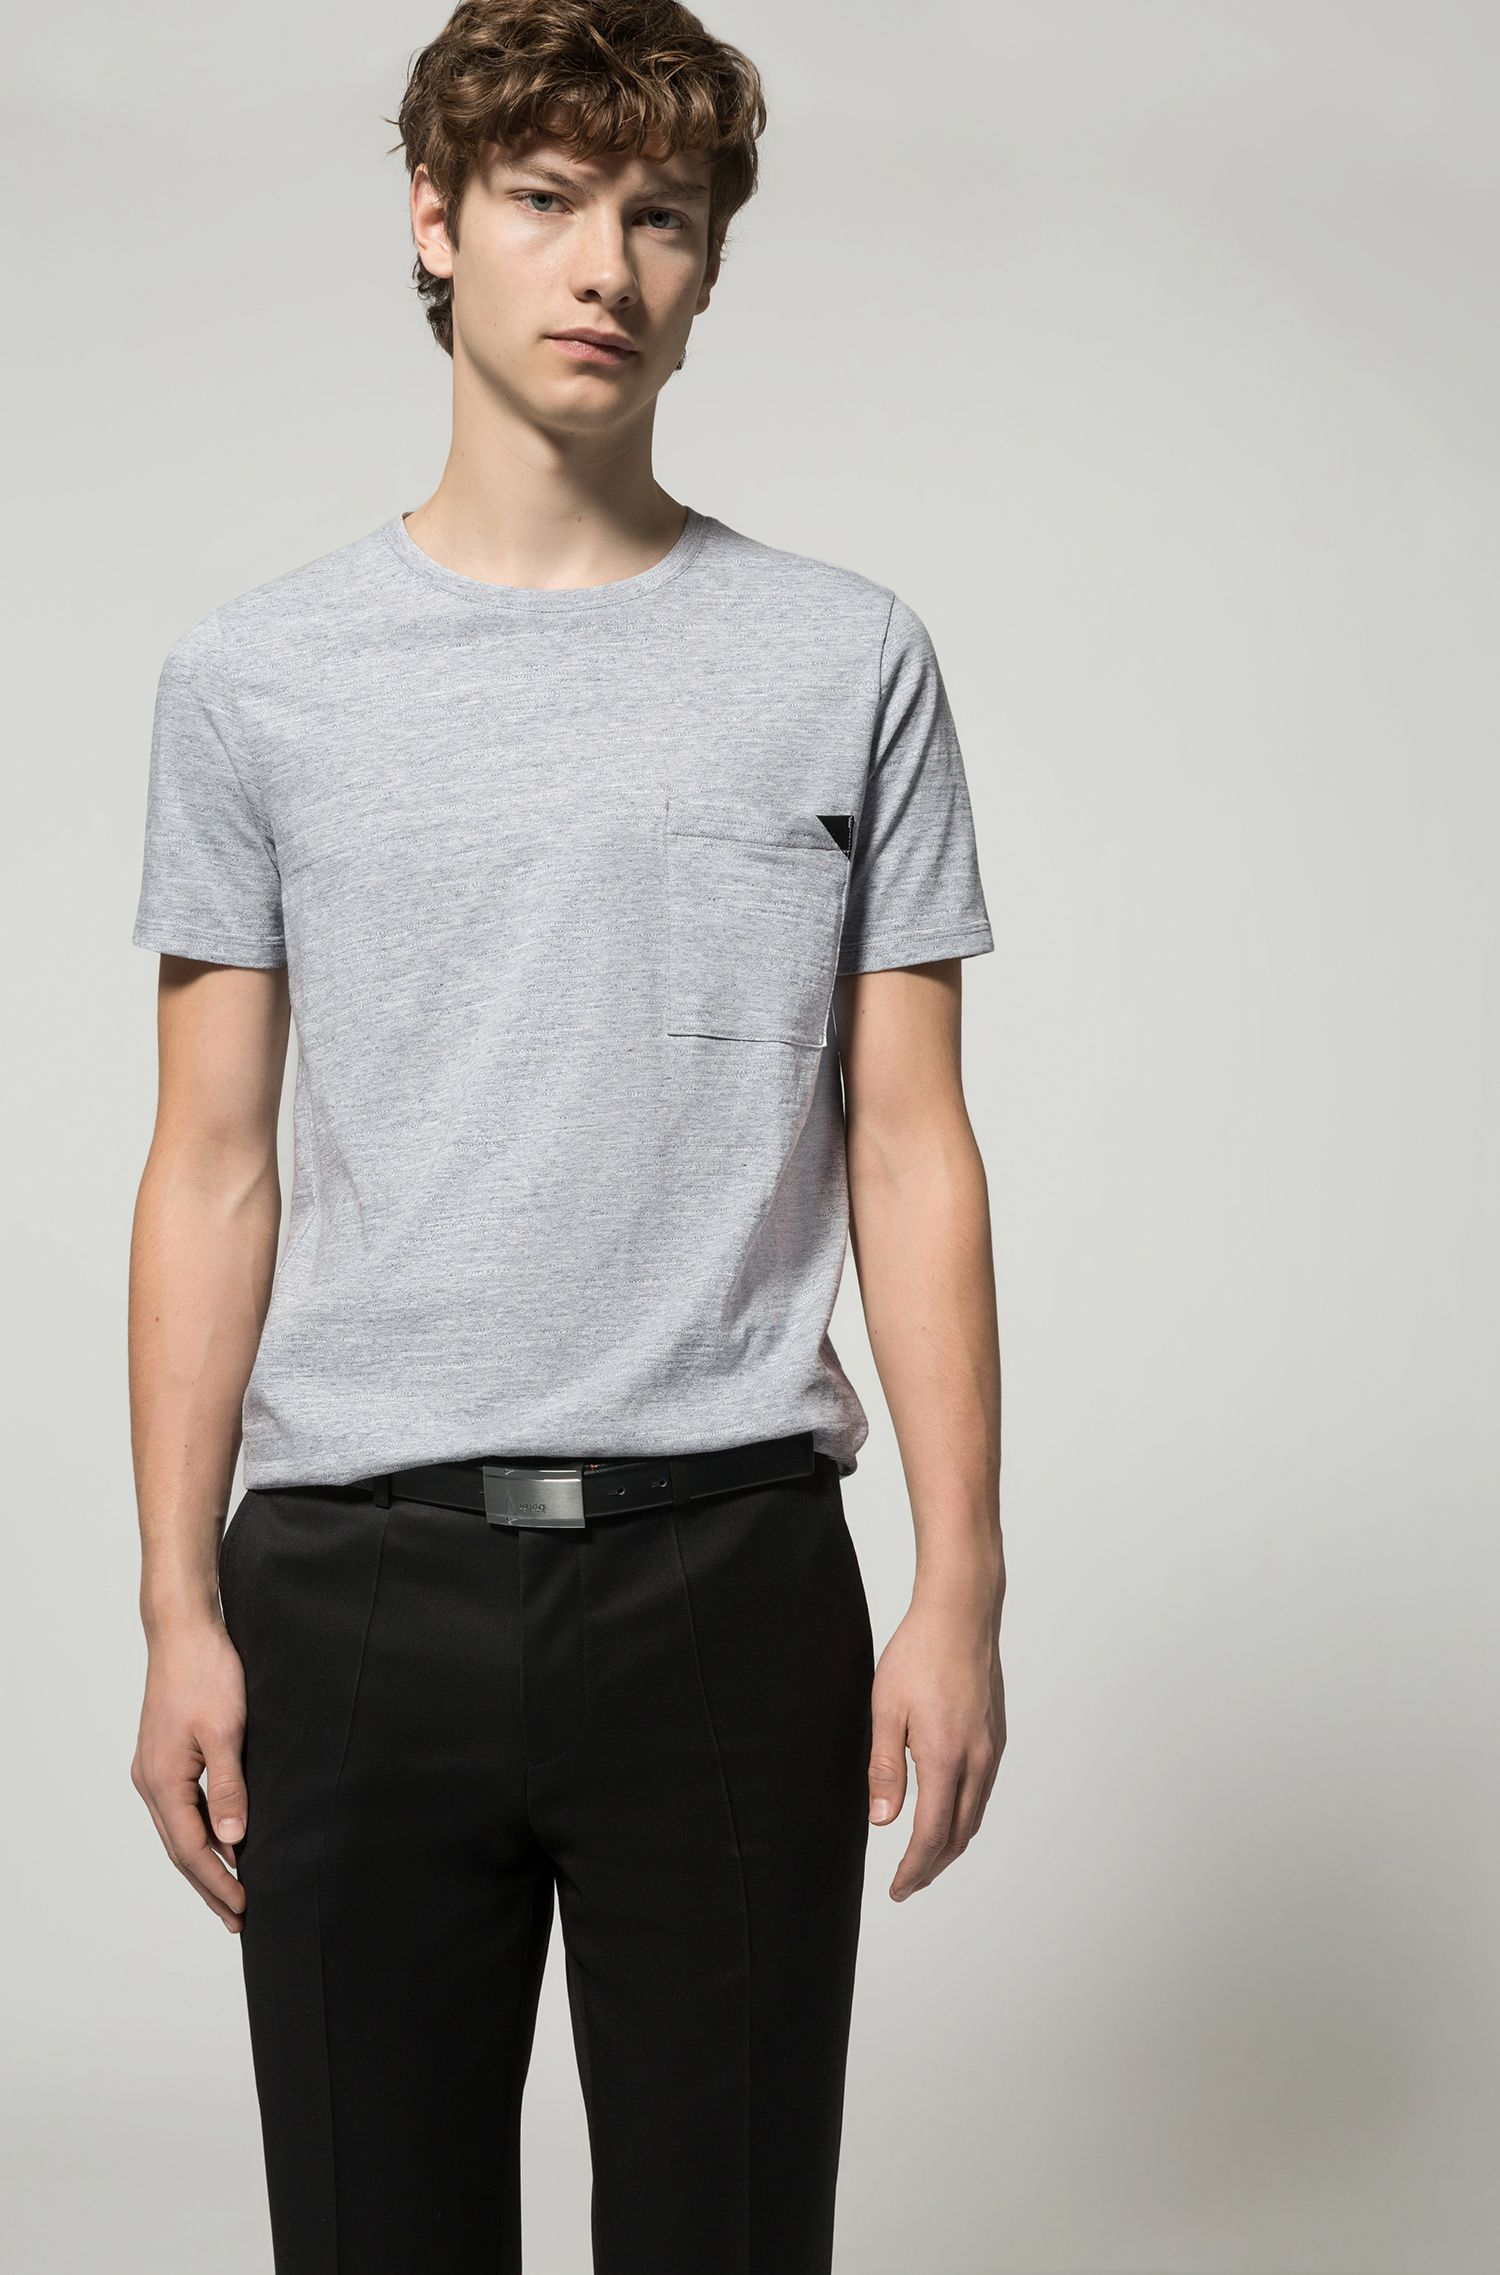 Faux Leather-Trim Cotton T-Shirt | Dohnny